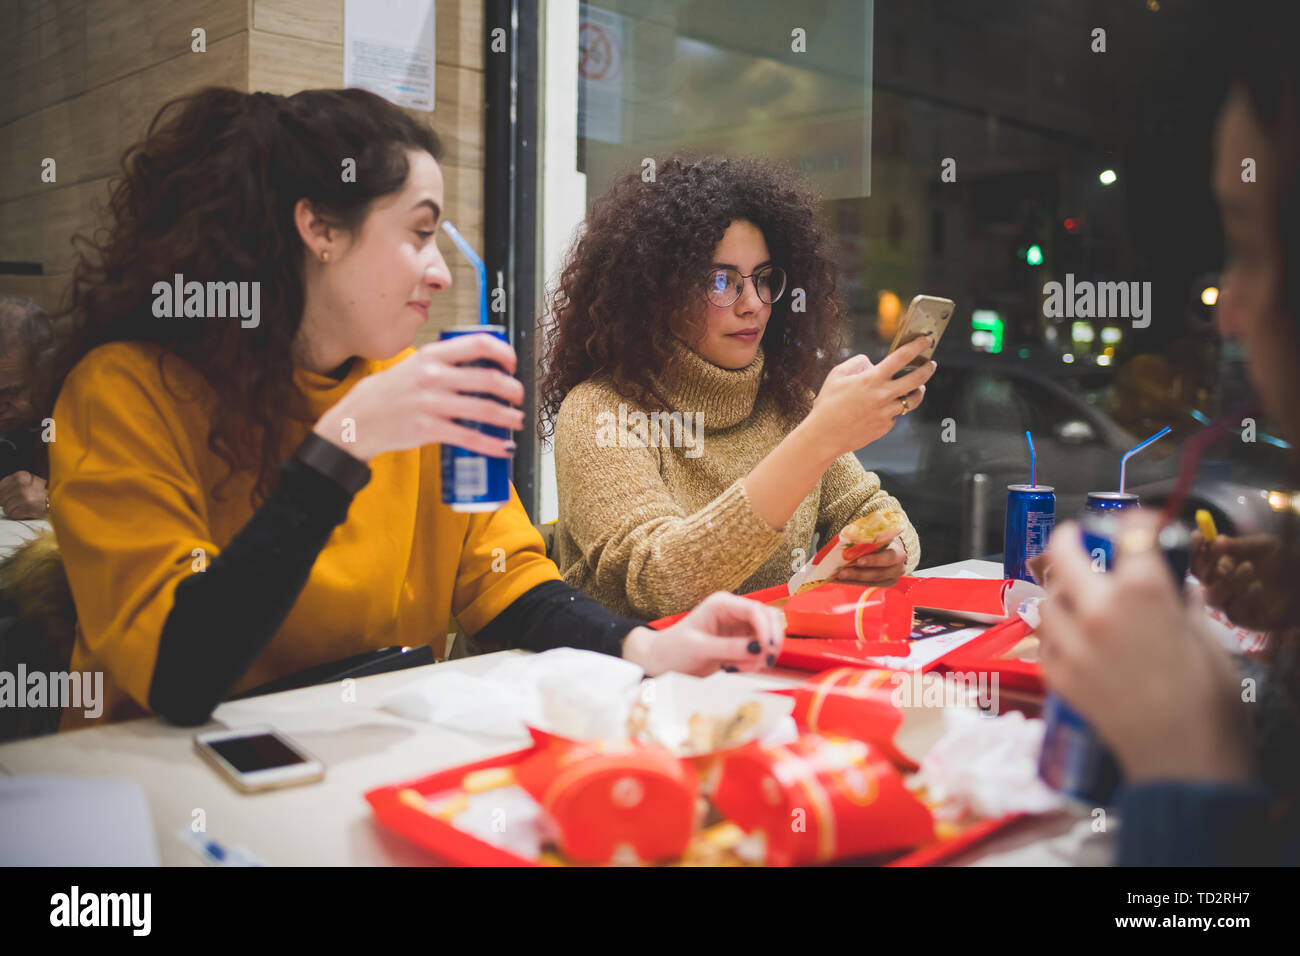 group of young women eating in fast food and interacting with smartphone – break time, conviviality, technology - Stock Image